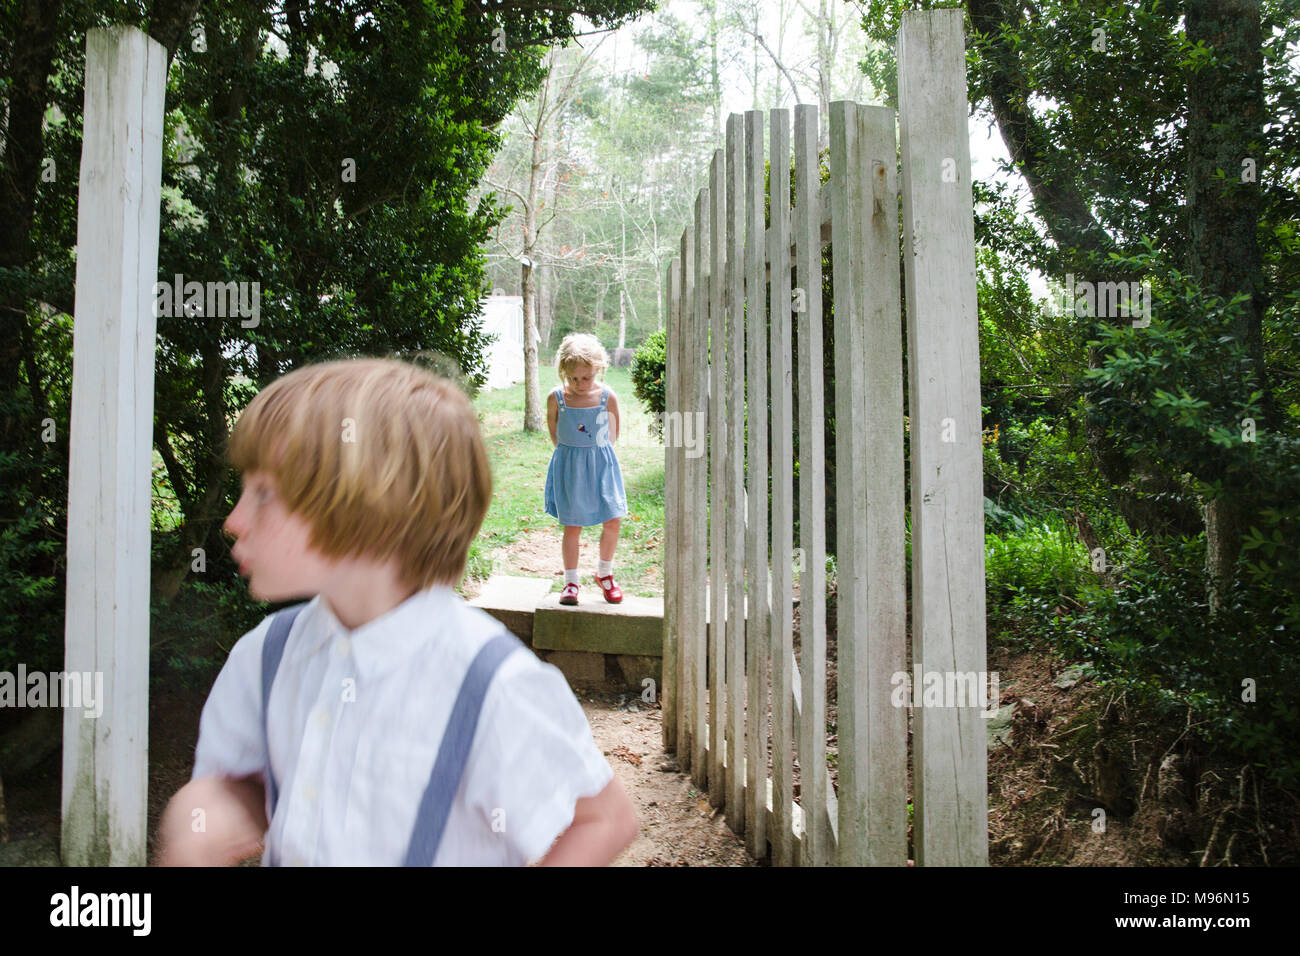 Two children wander around gate Stock Photo